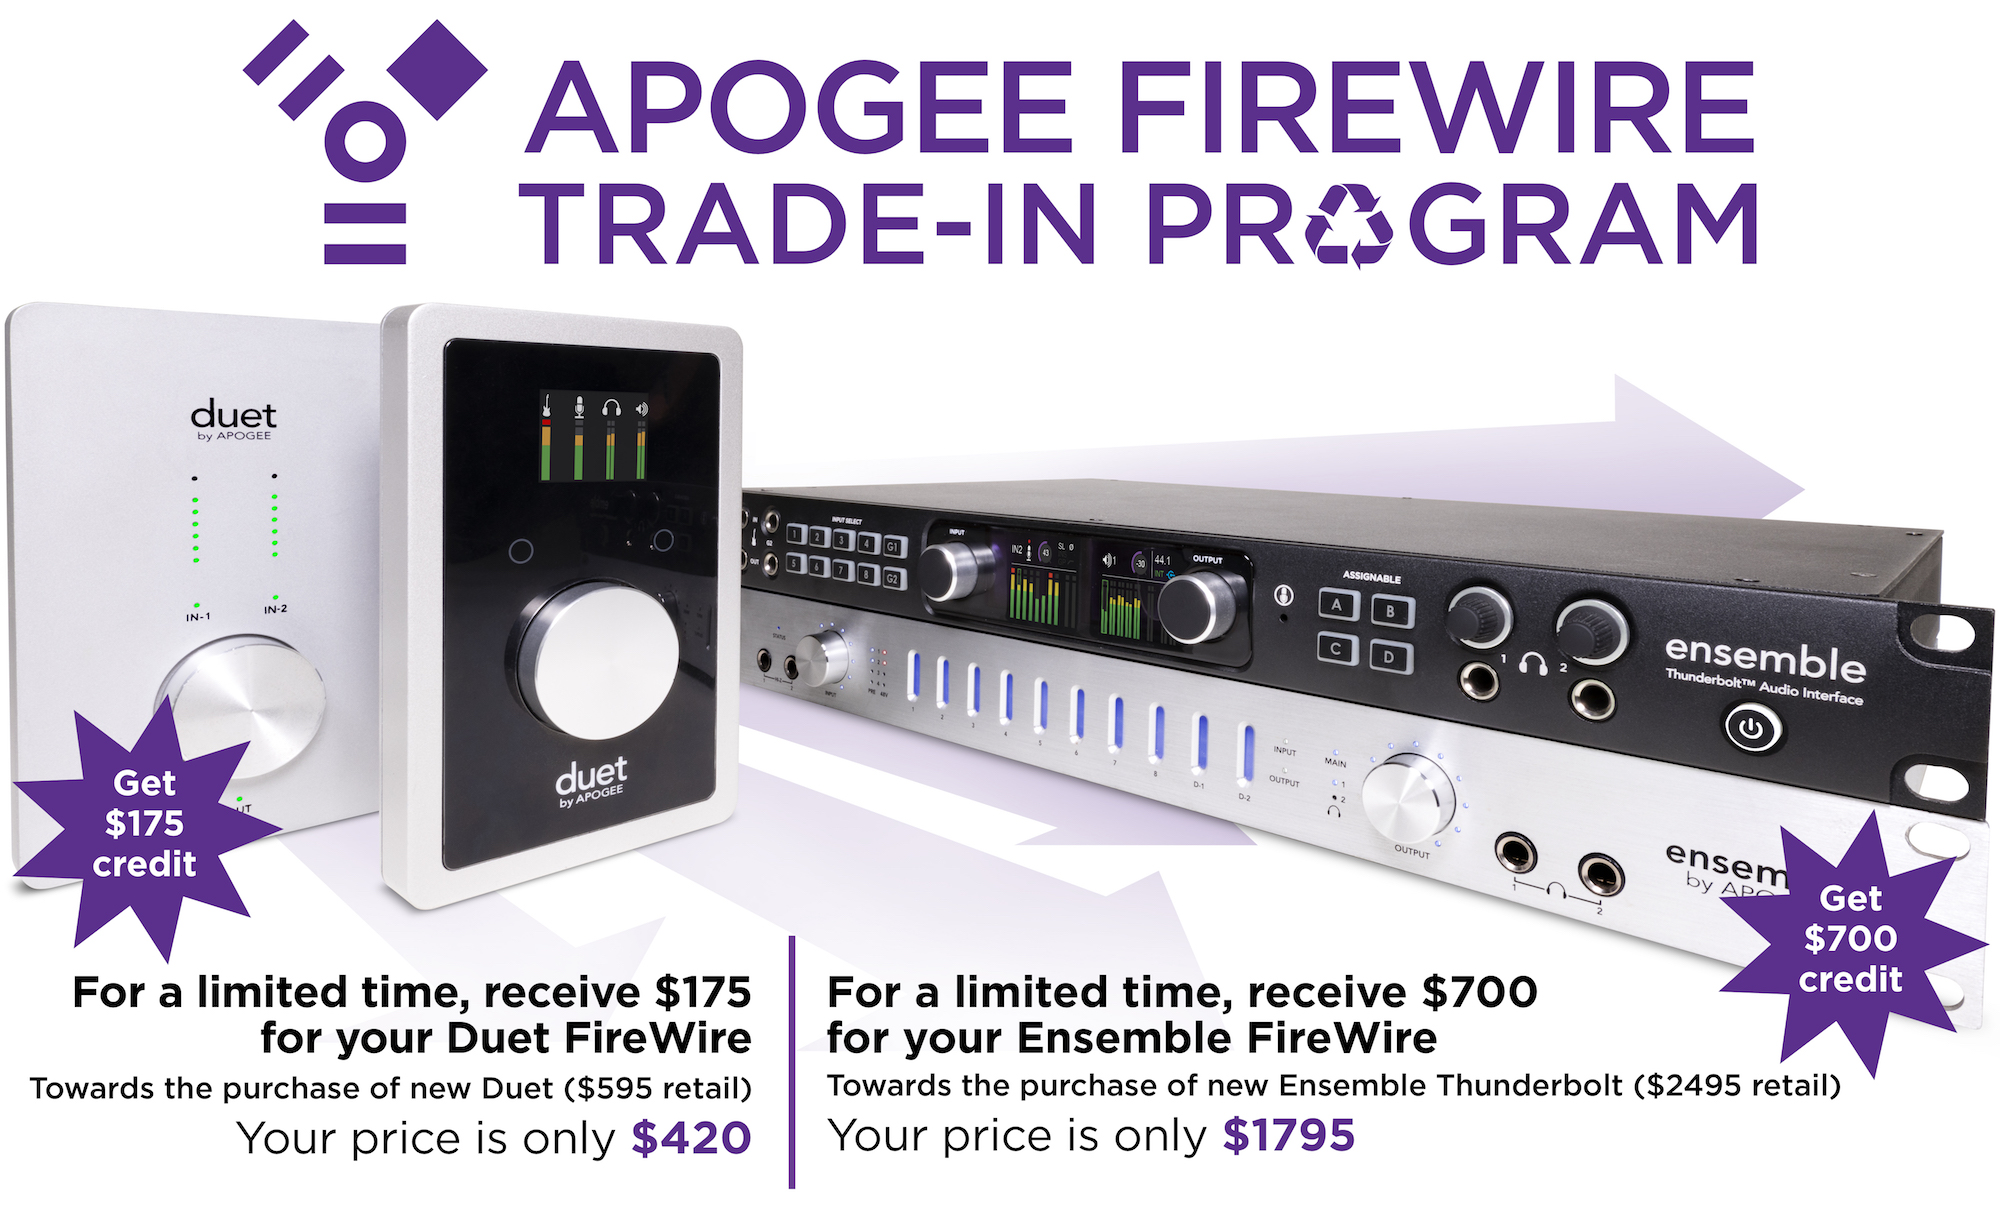 Apogee Duet and Ensemble FireWire Trade-in - Apogee Electronics